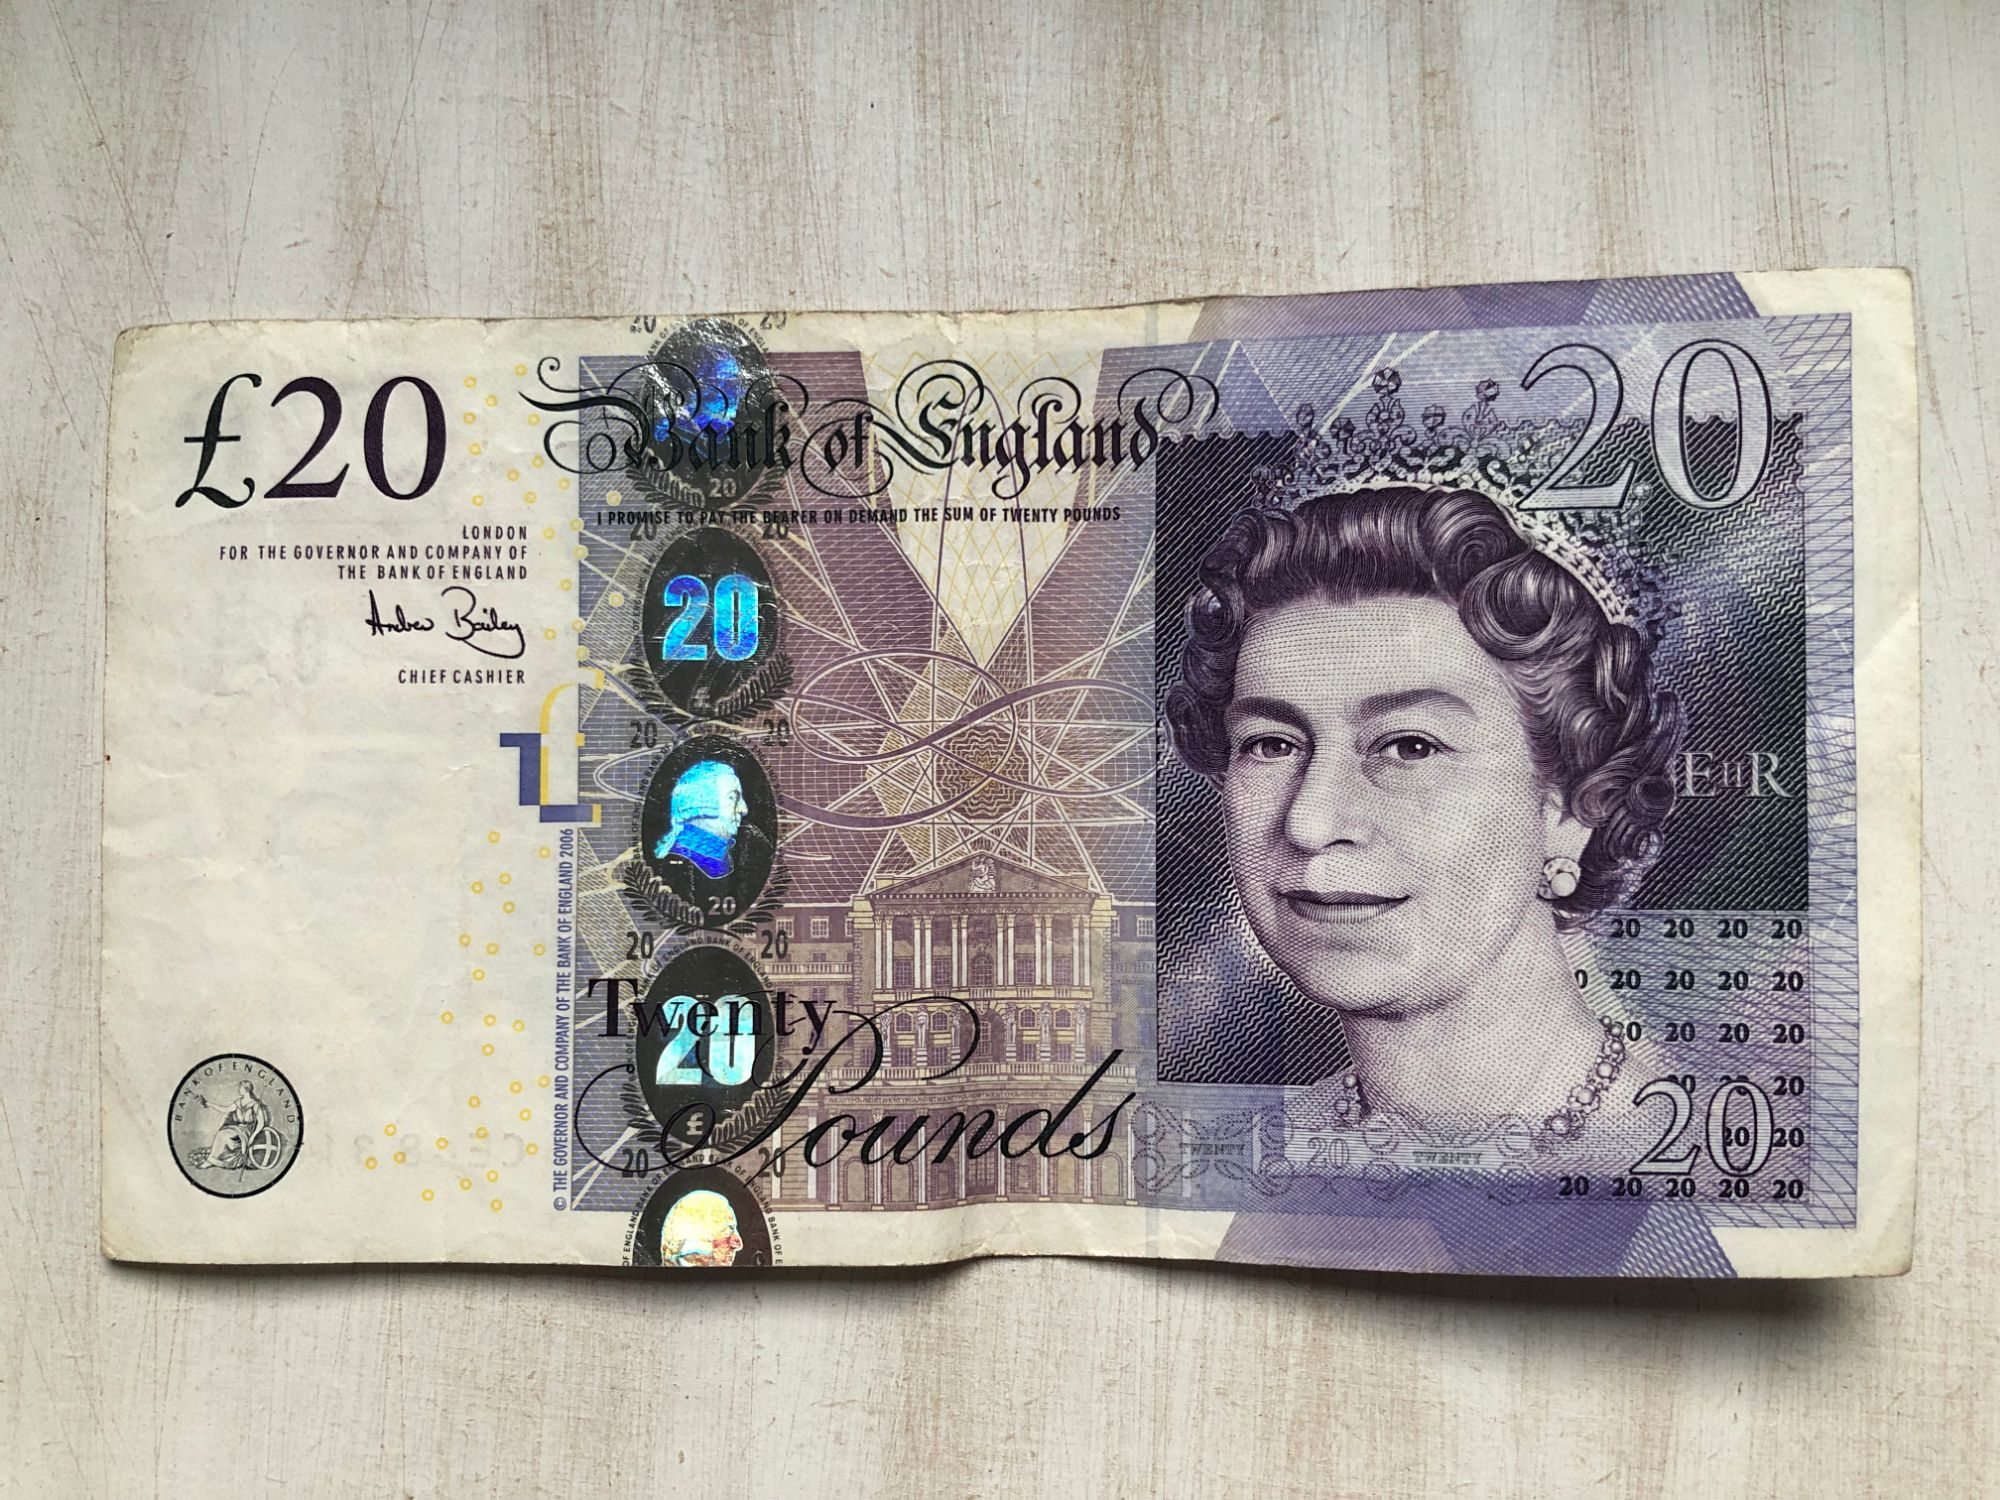 Free stock images money bloggers blog photos £20 twenty pound note